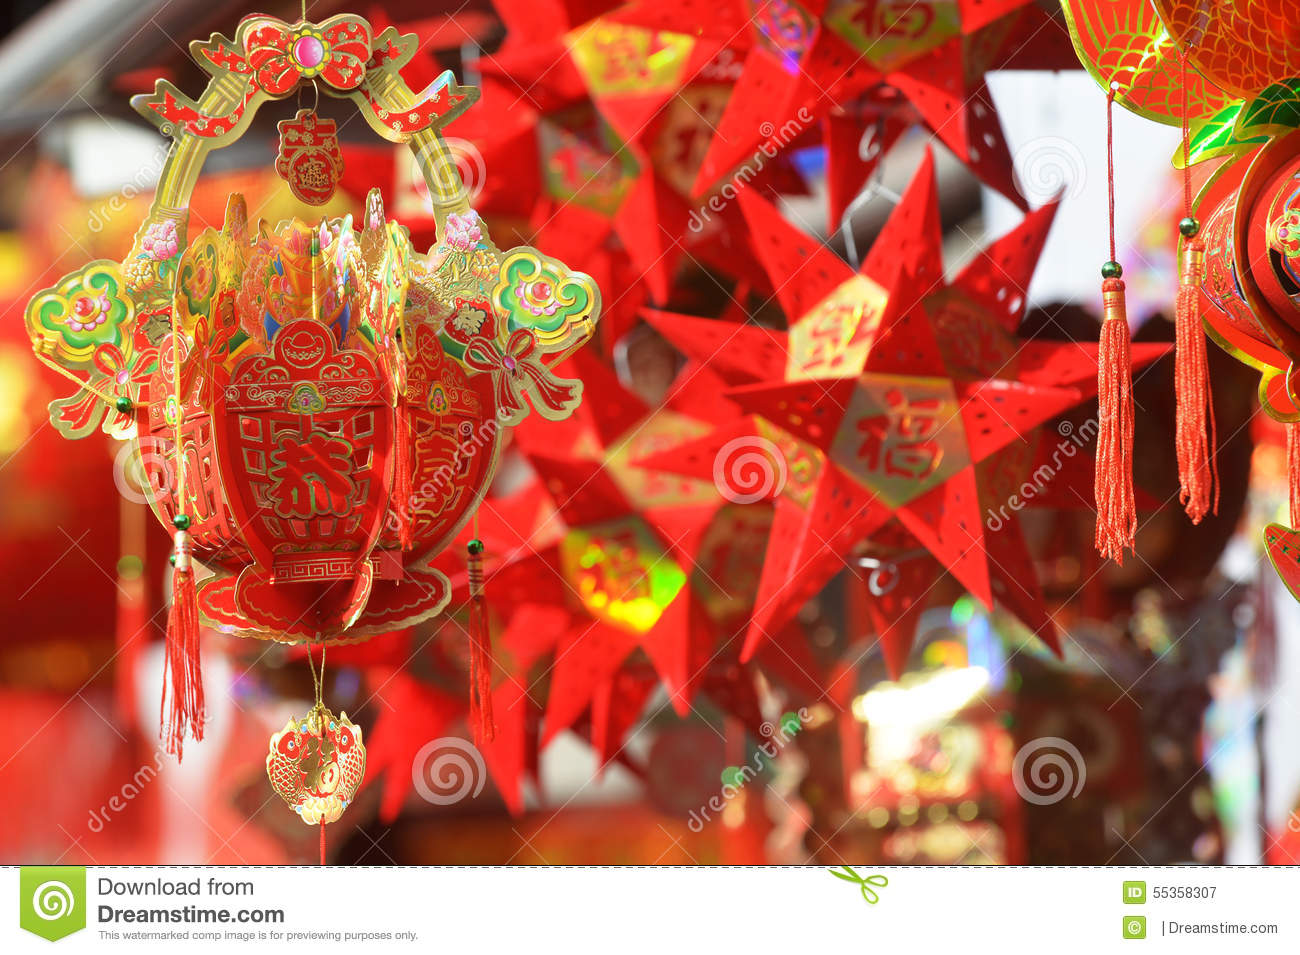 Red lanterns, red firecrackers, red pepper, red everyone, red Chinese knot, red packet...The Spring Festival is coming